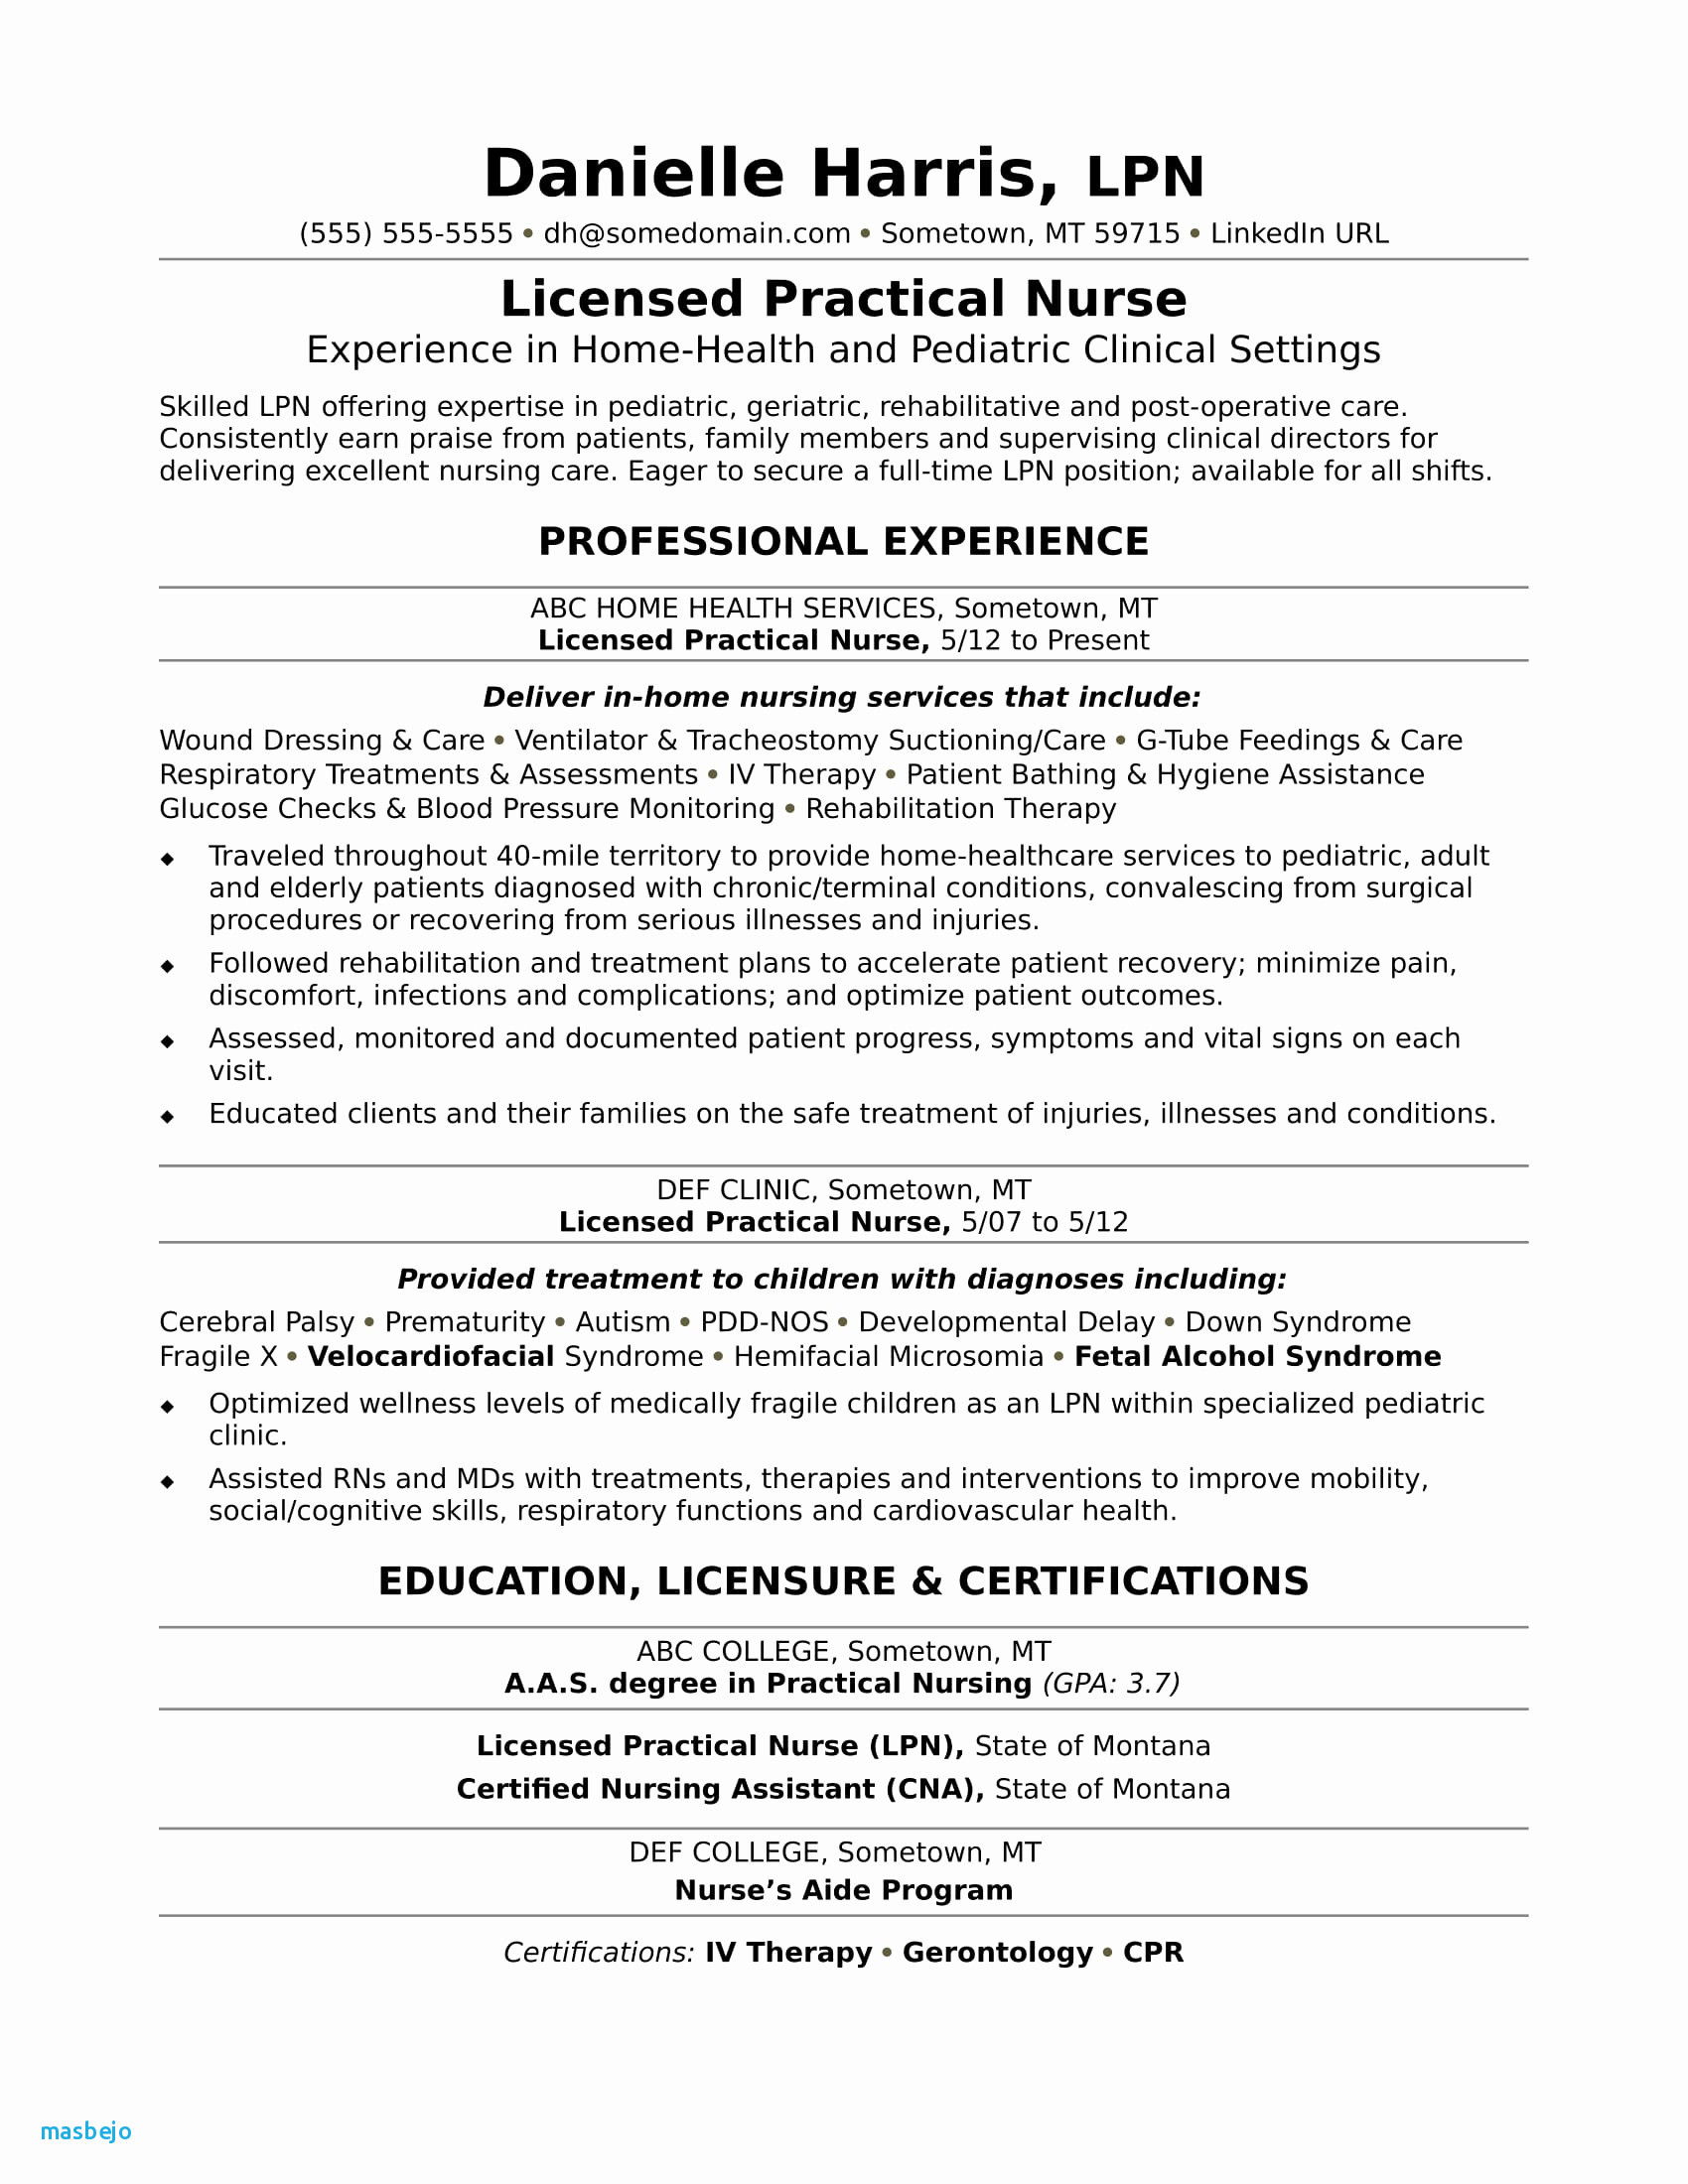 Nurse Practitioner Resume - Example Nurse Practitioner Resume Nurse Practitioner Resume